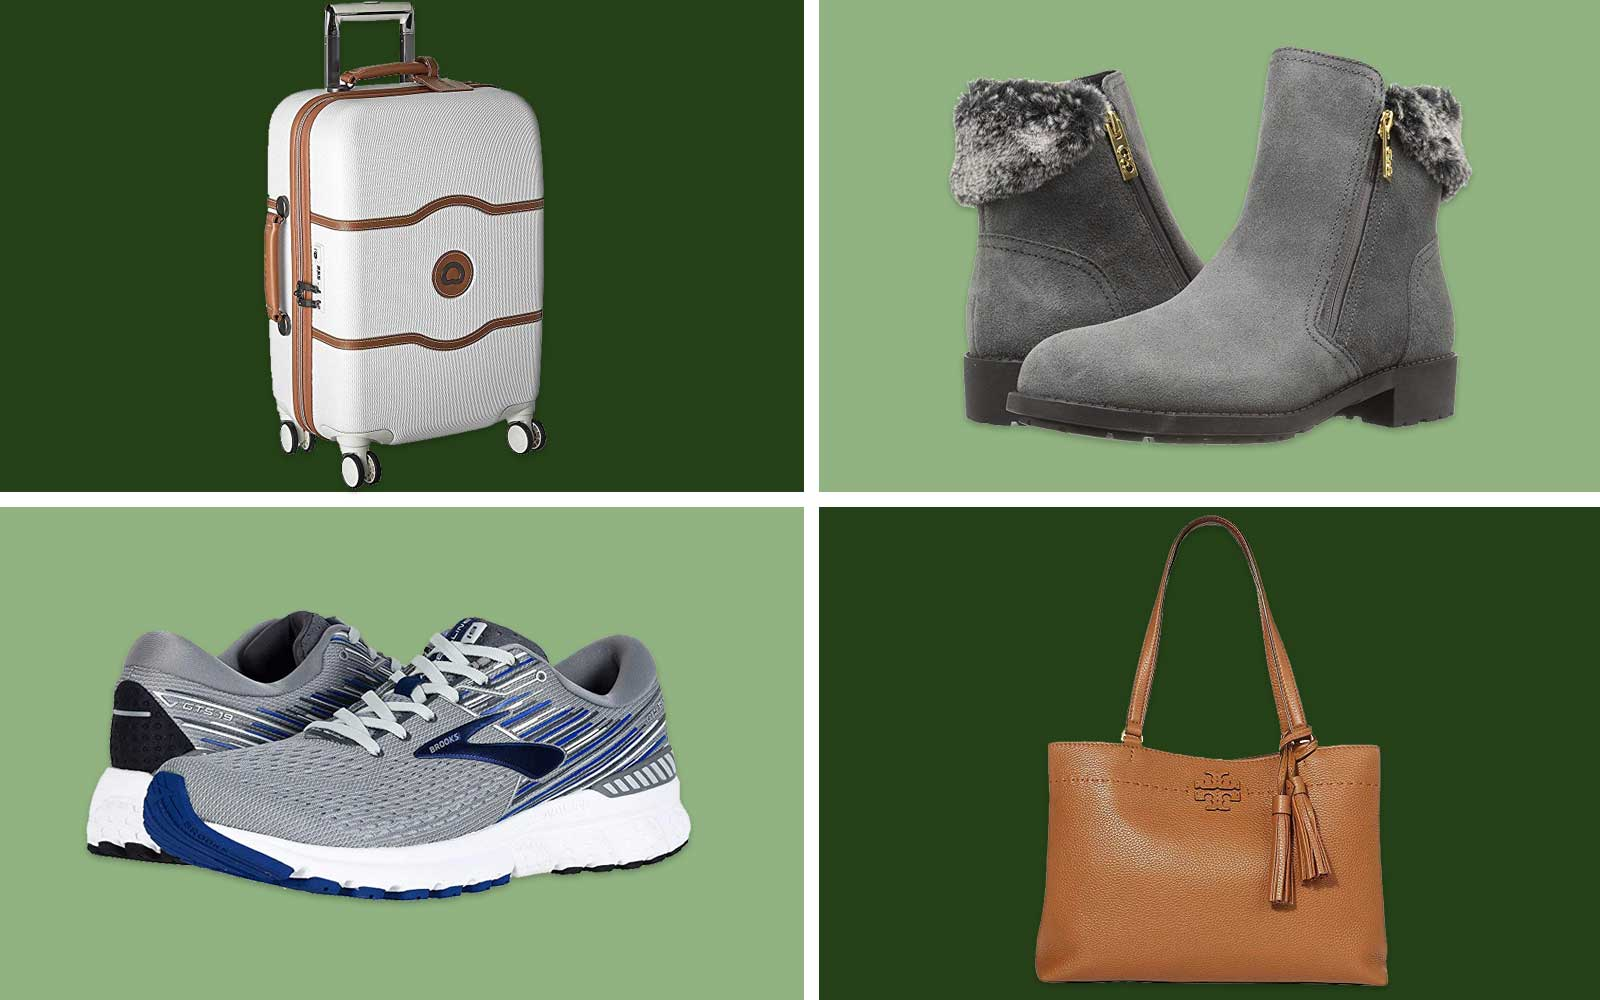 Zappos Cyber Monday Deals on Bags and Shoes